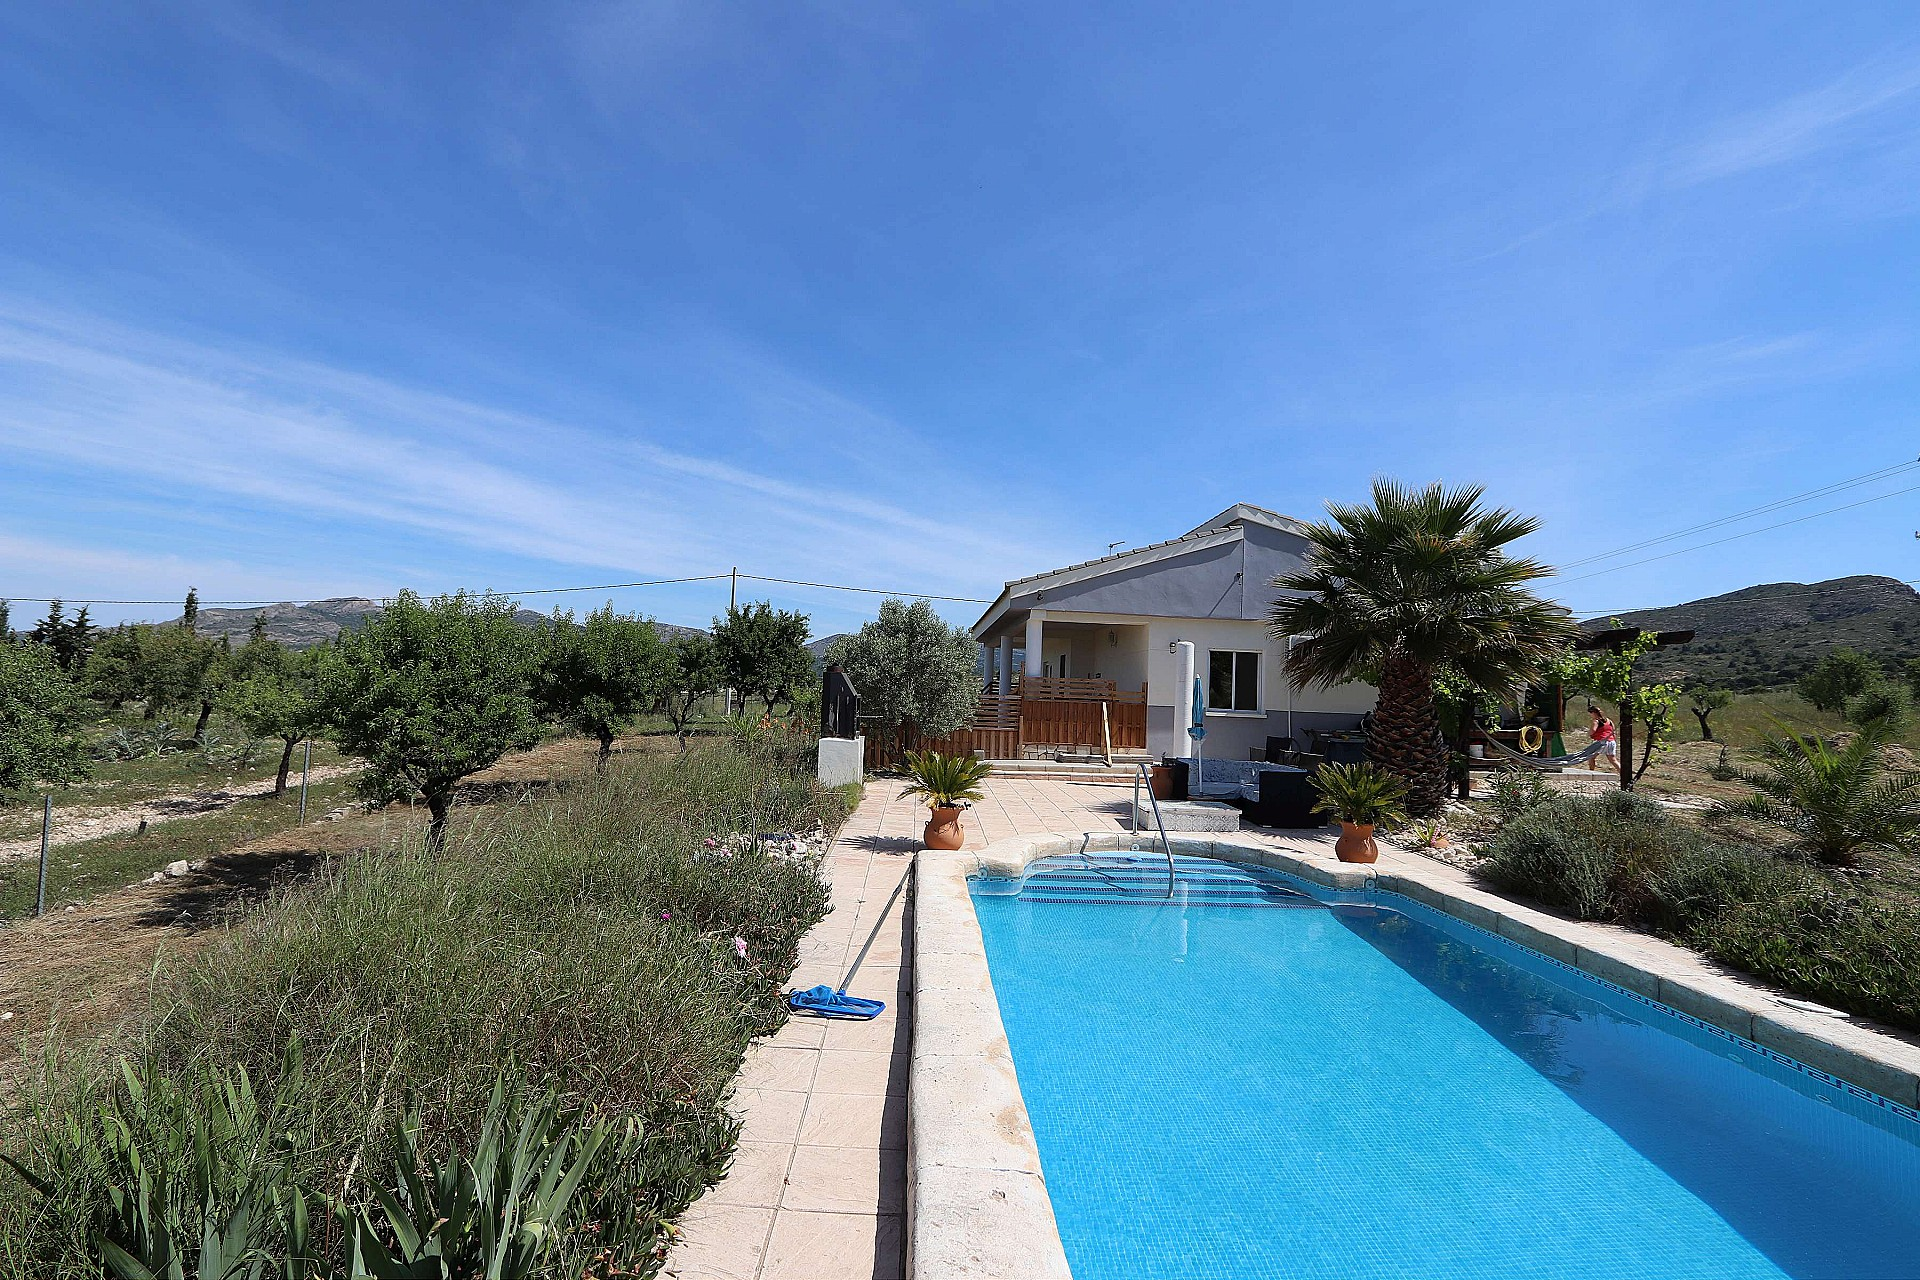 For sale: 3 bedroom house / villa in Sax